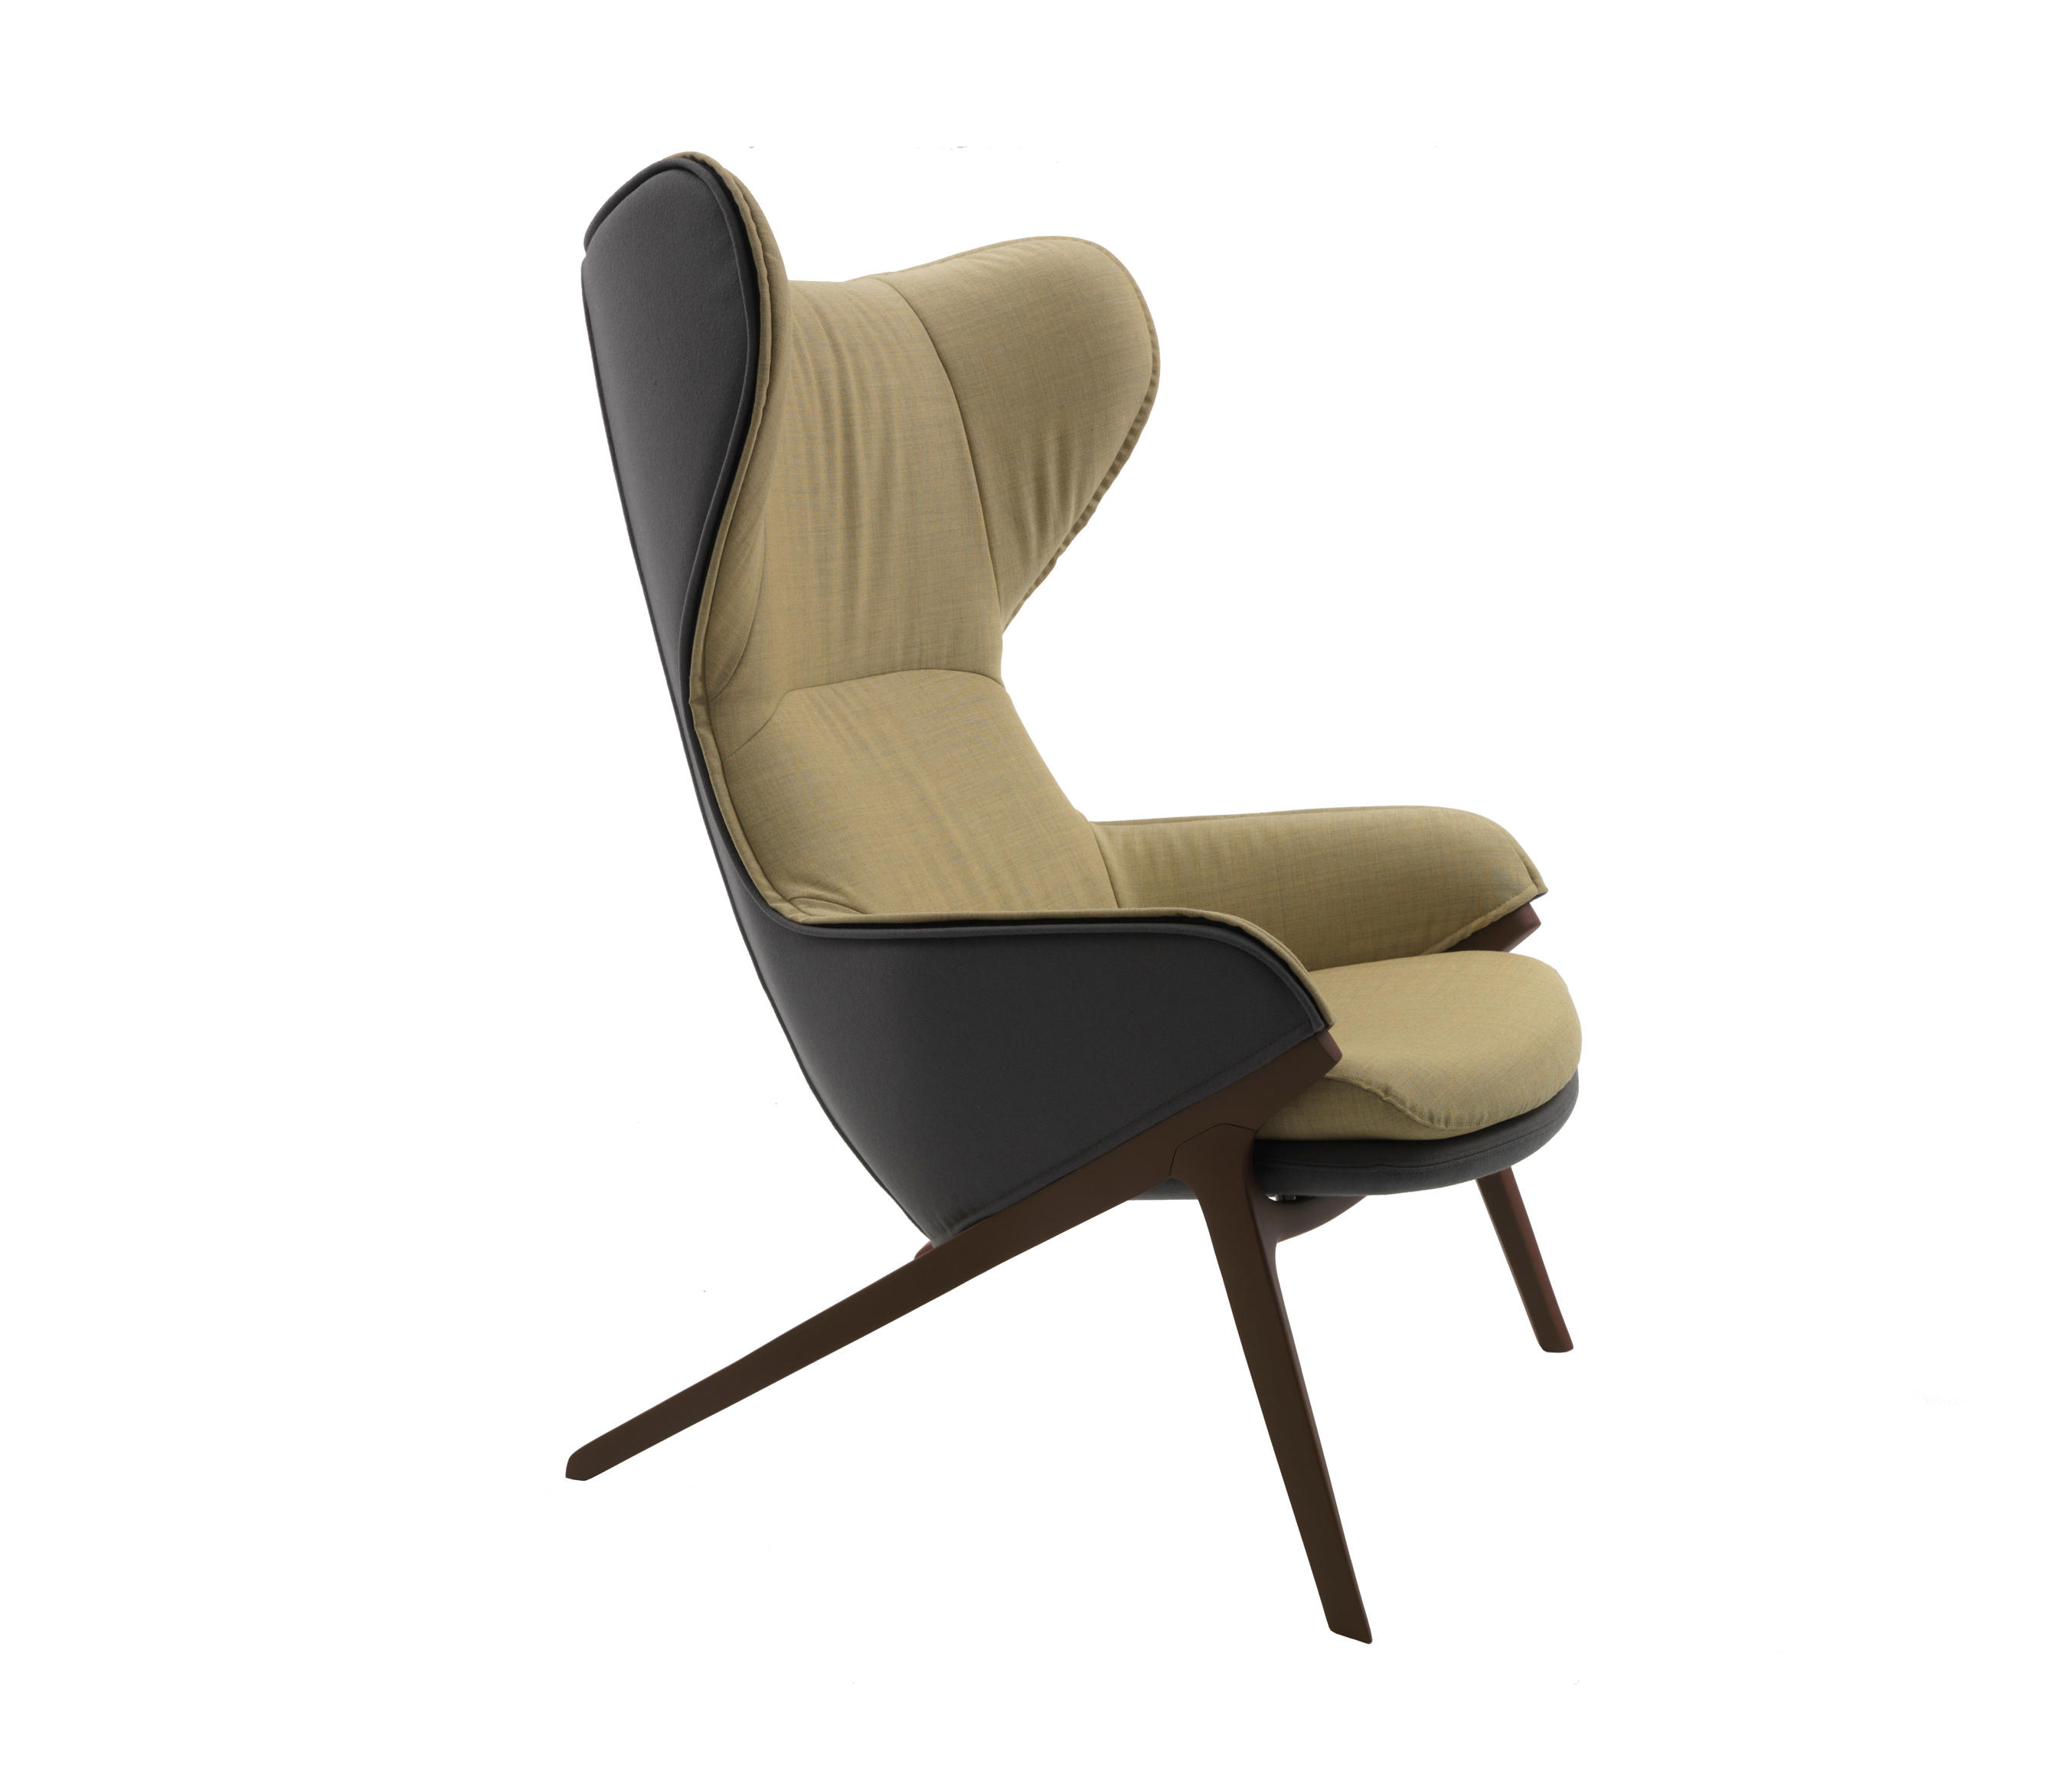 P22 Lounge Chairs From Cassina Architonic